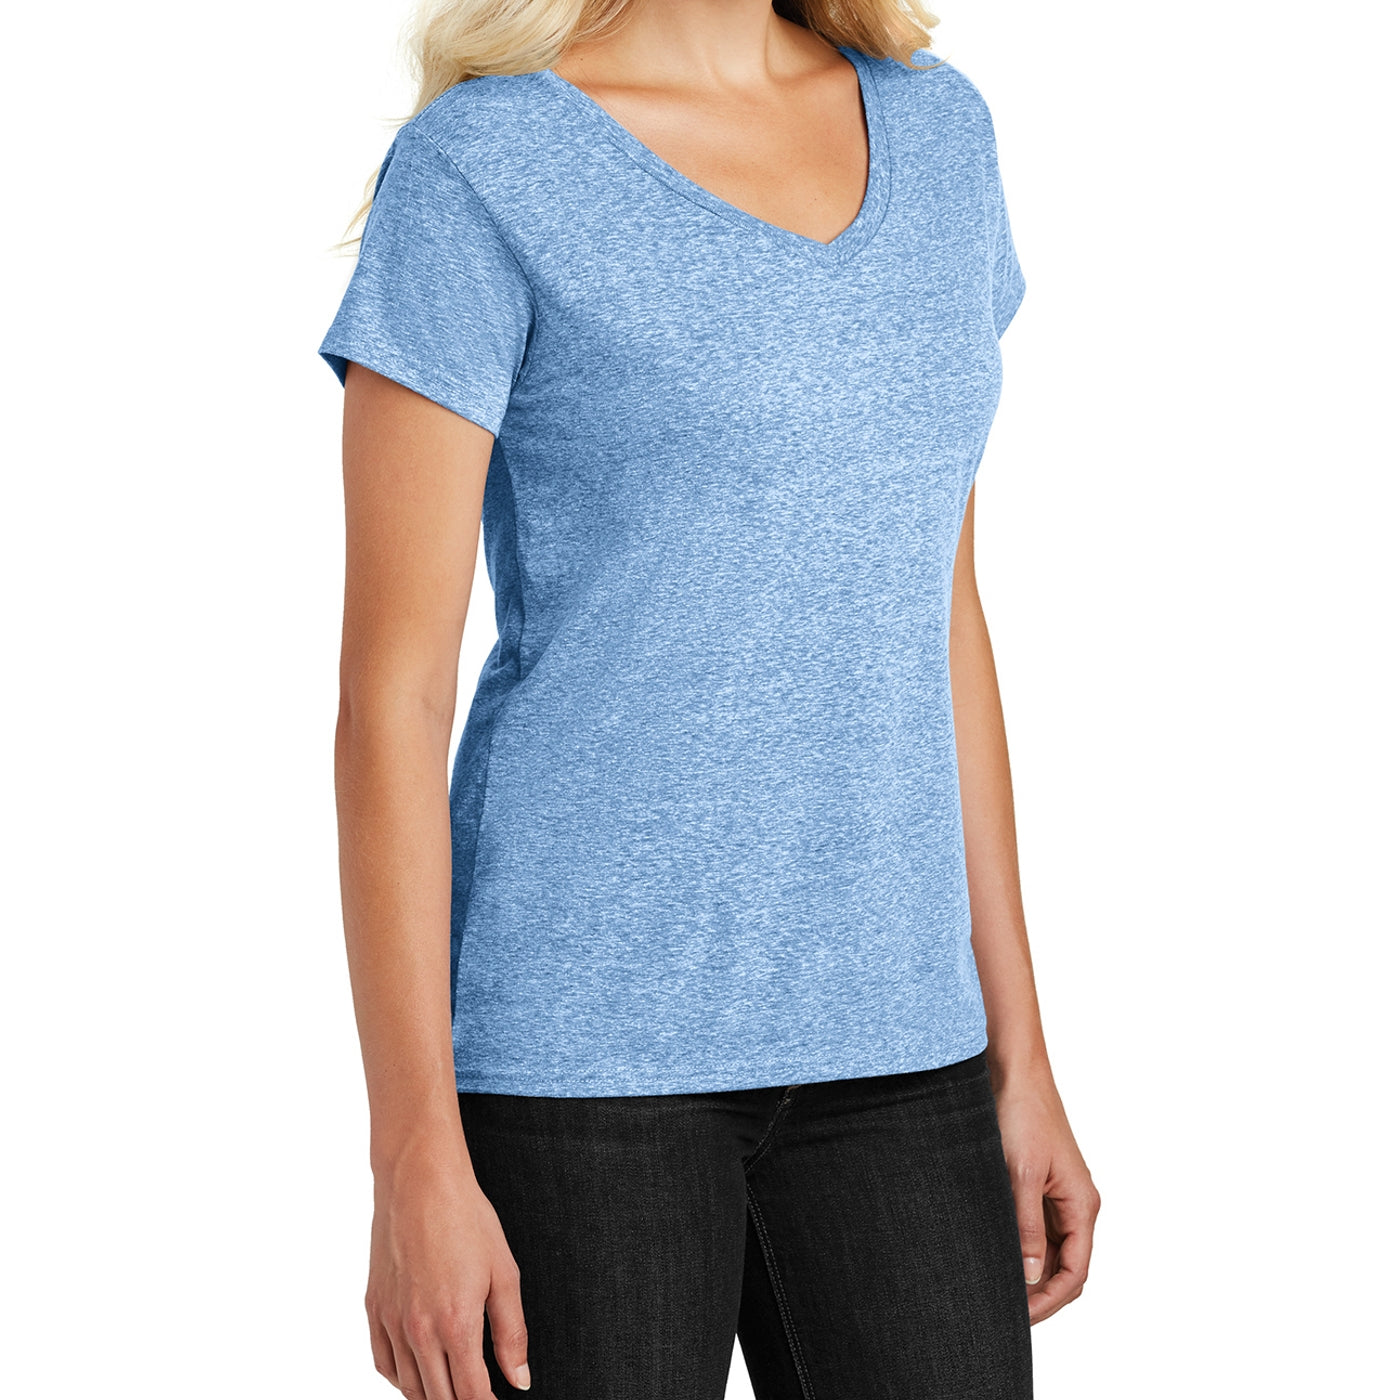 Women's Cosmic Relaxed V-Neck Tee - Royal Astro